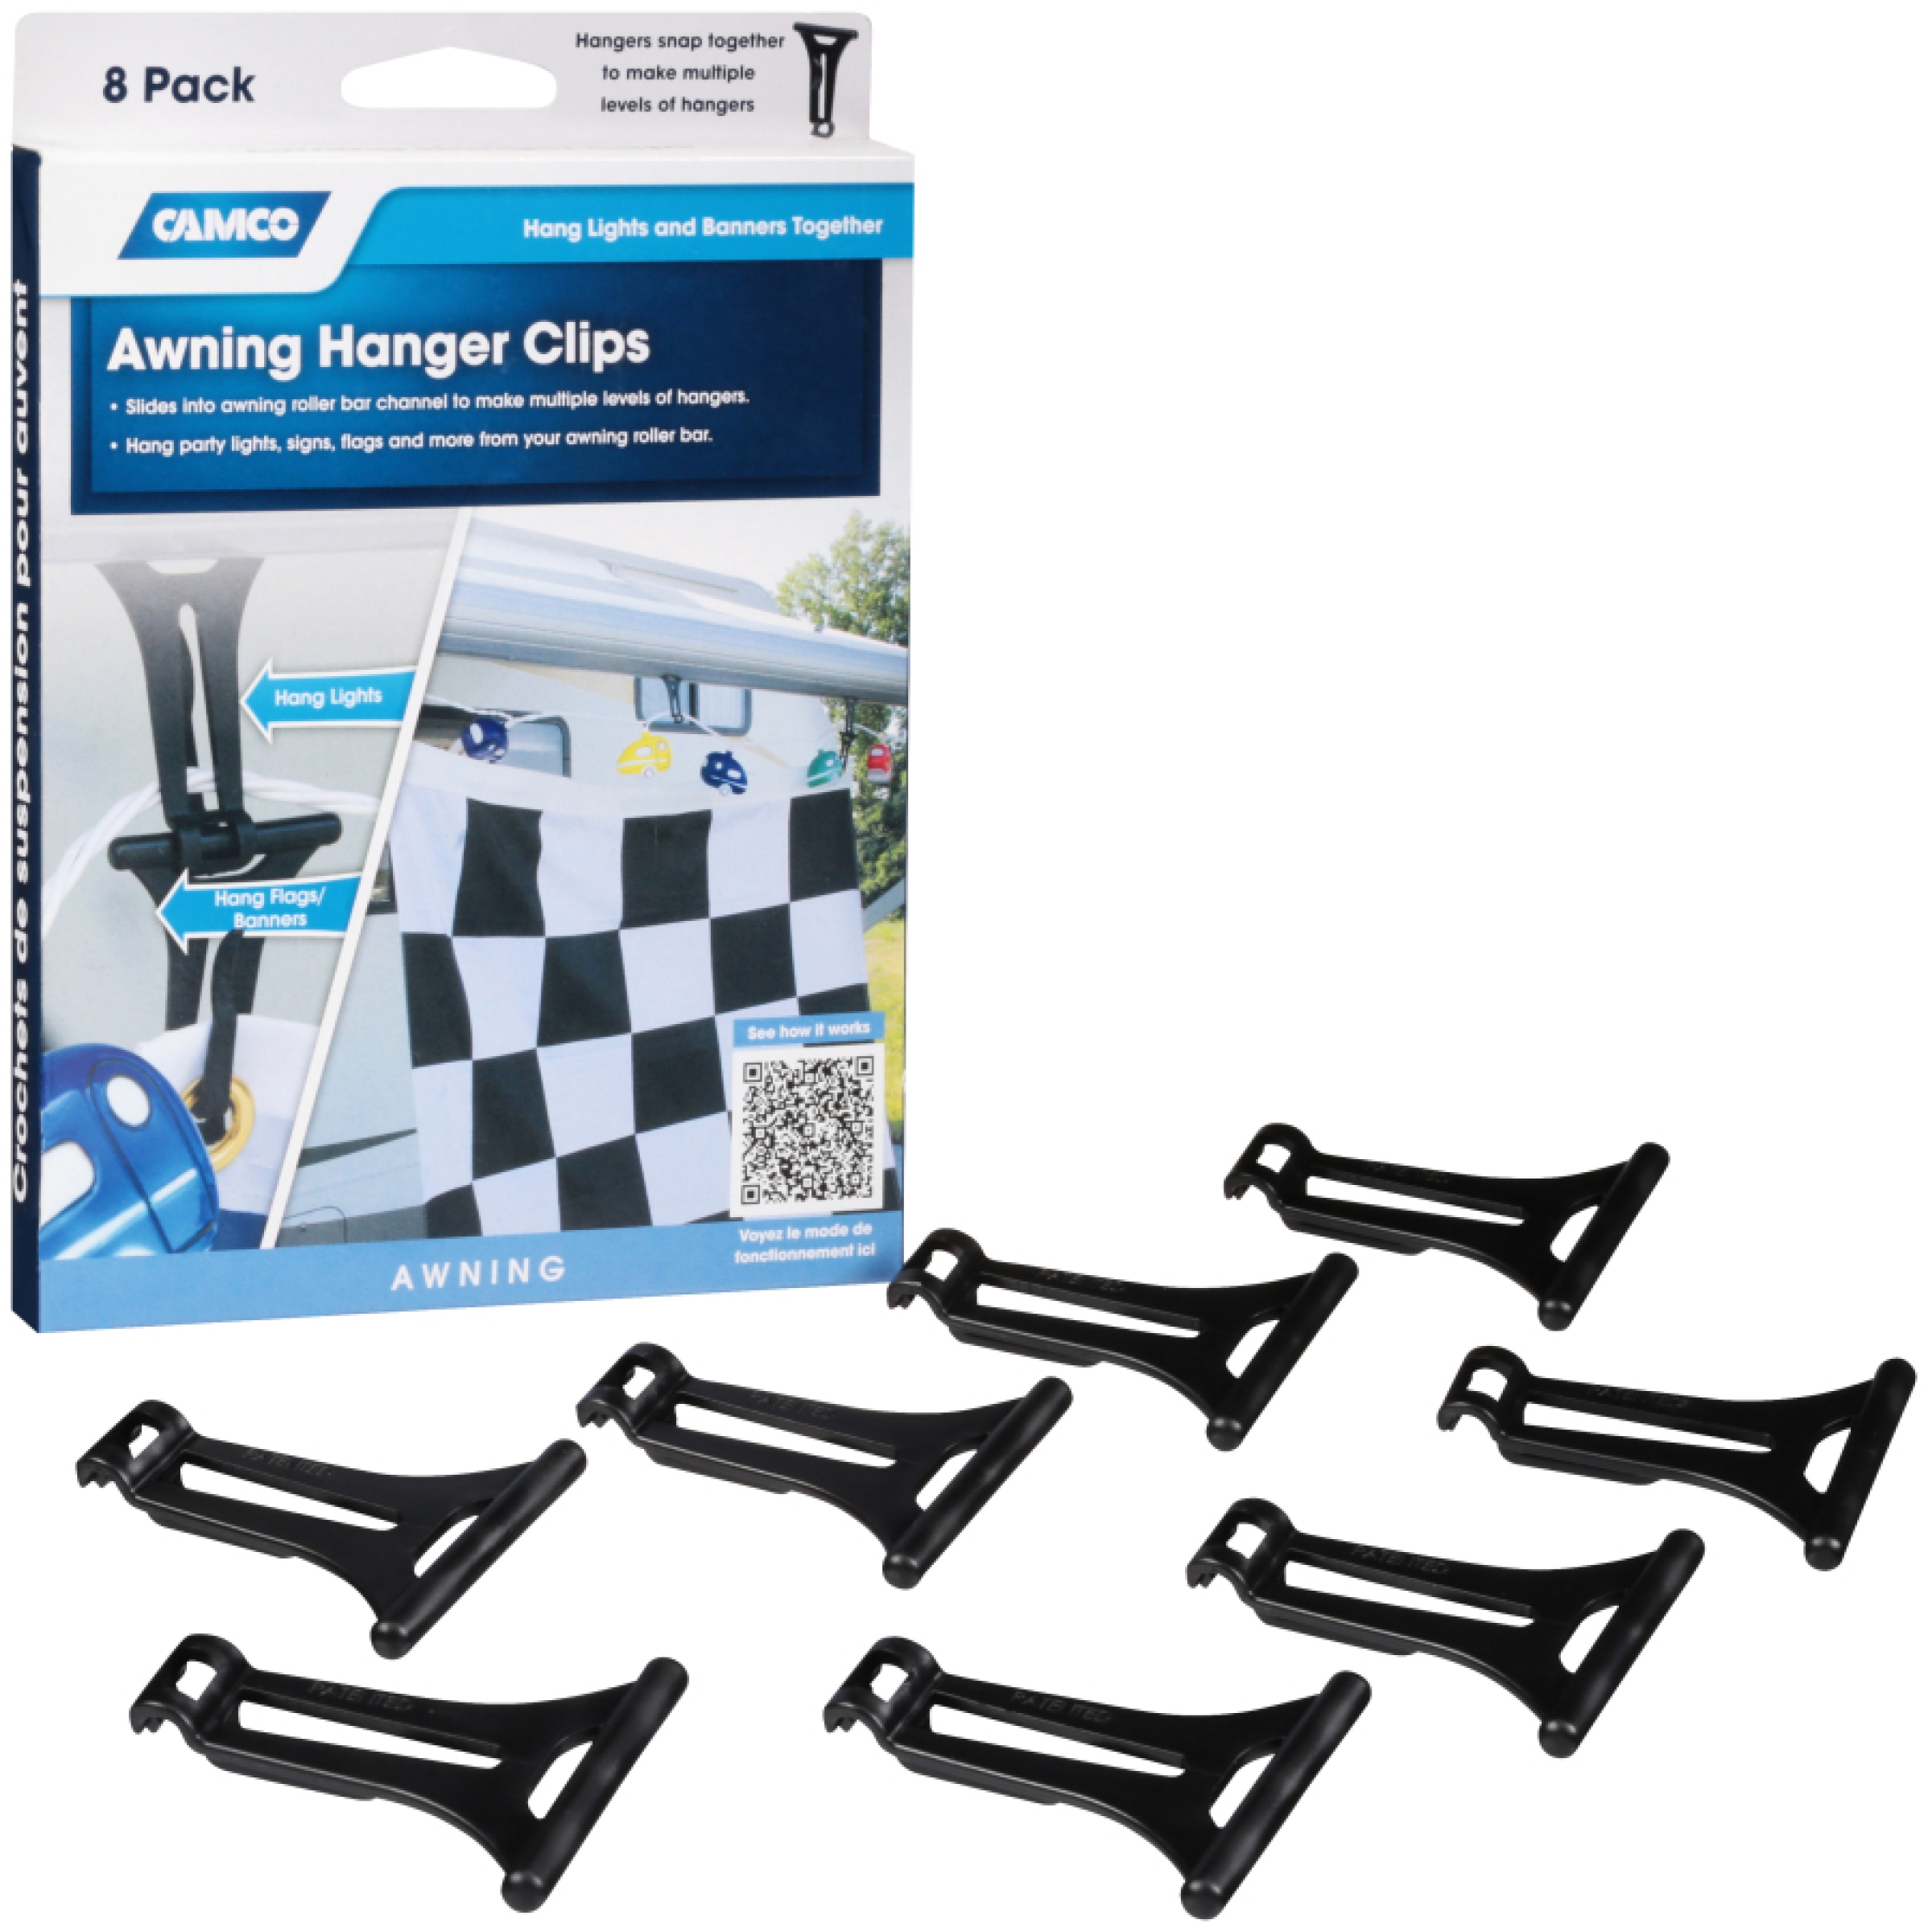 Camco Awning Hanger Clips 8 ct Box